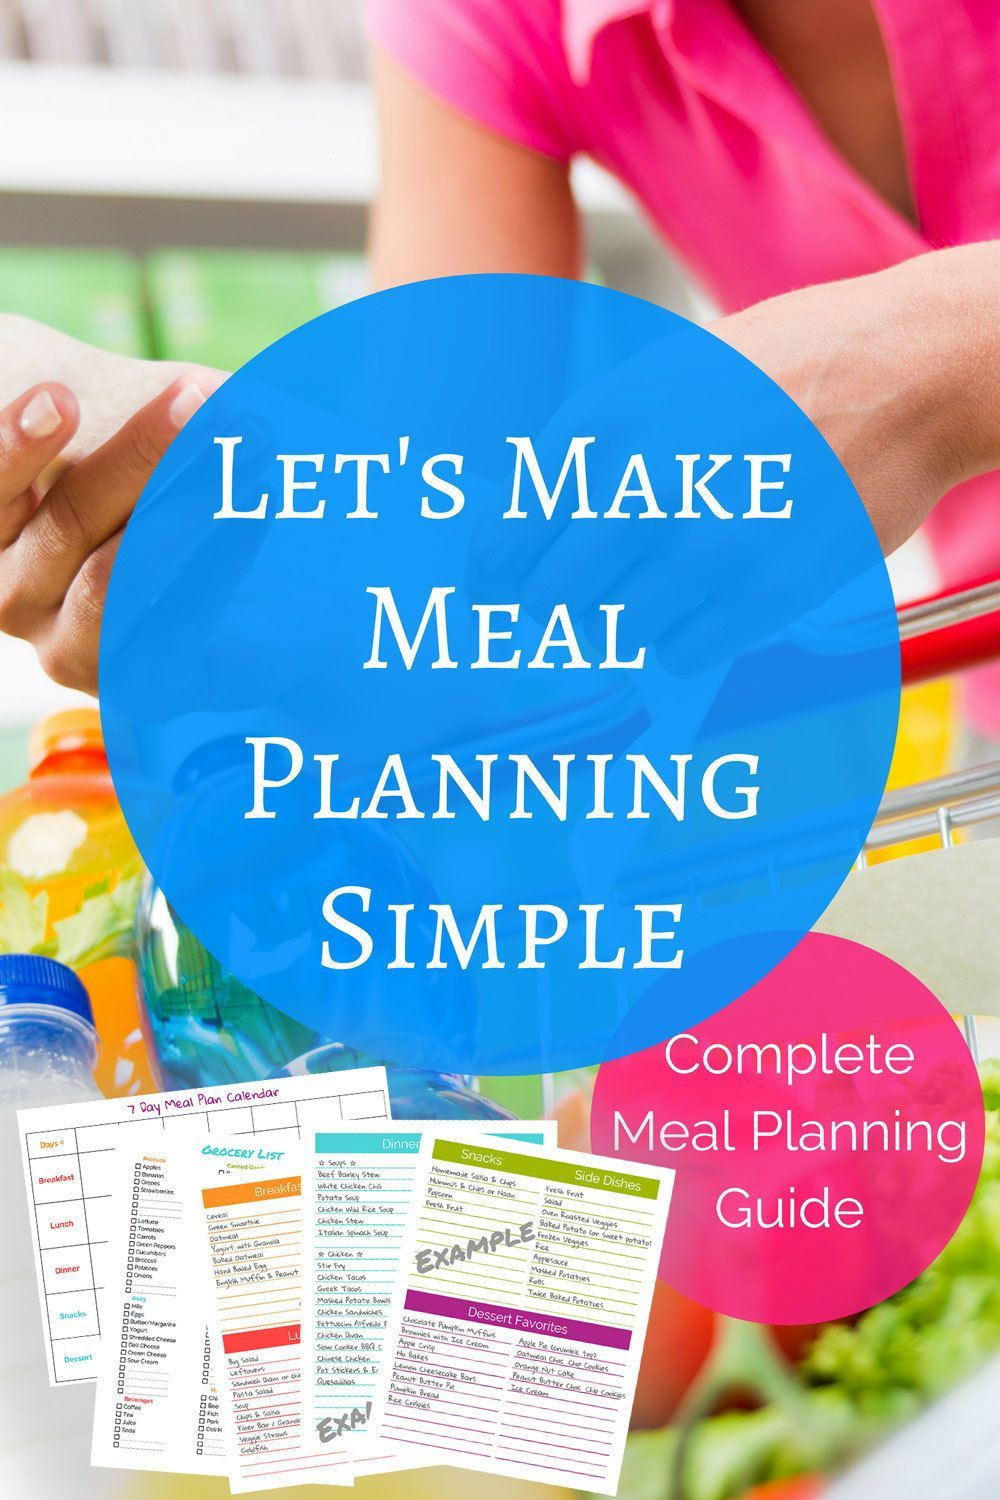 Lets Make Meal Planning Simple Complete Meal Planning Guide Lets Make Meal Planning Simple Complete Meal Planning Guide